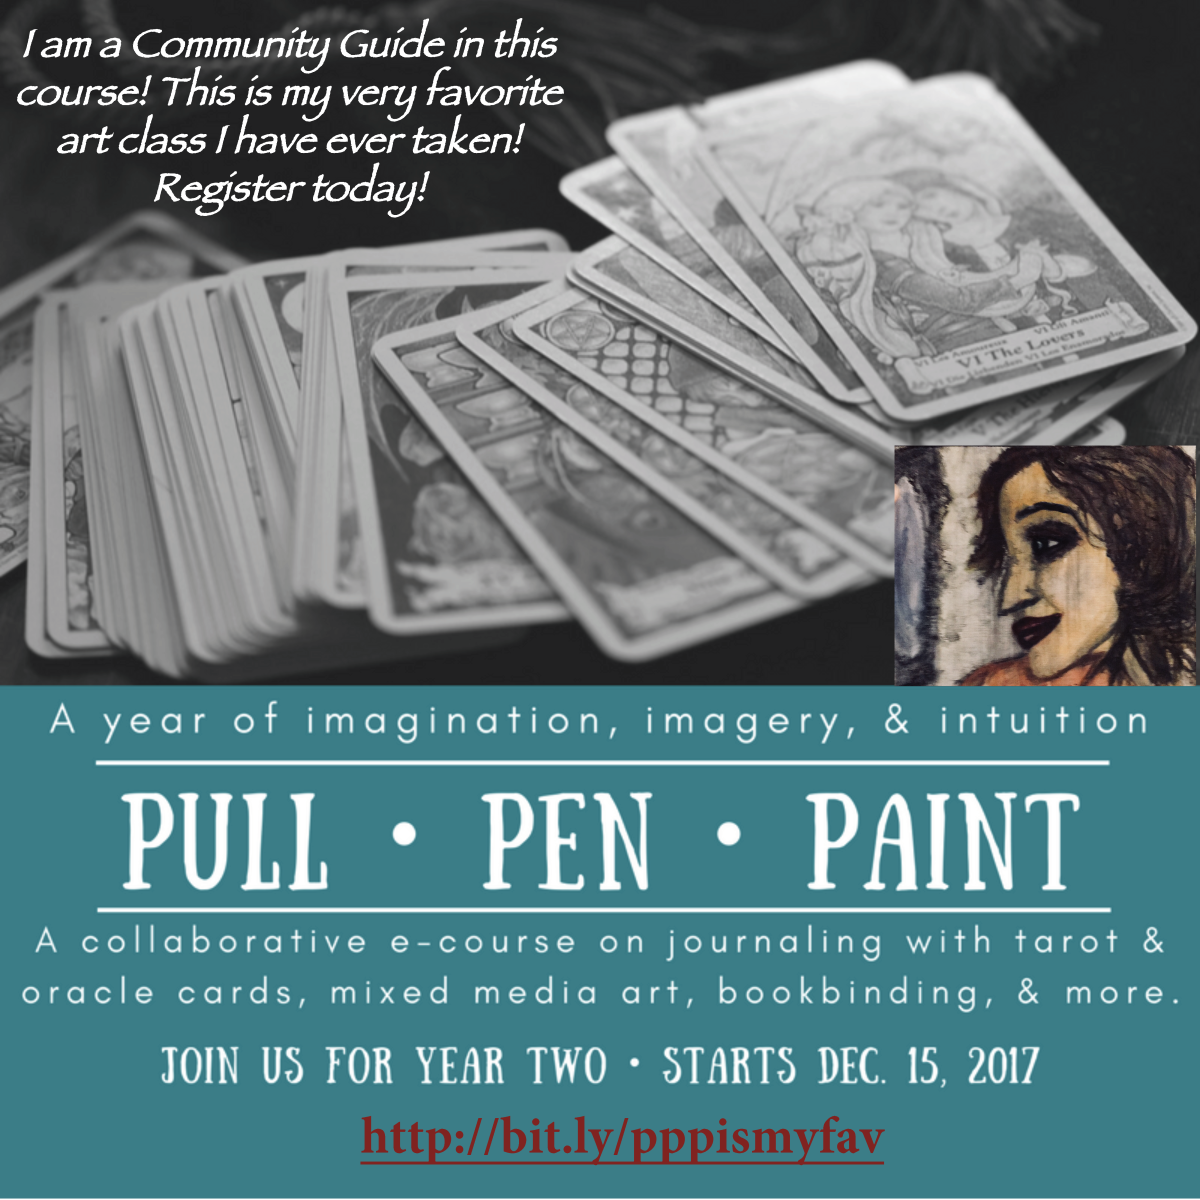 Pull, Pen, Paint Is Officially Starting December 15, 2018